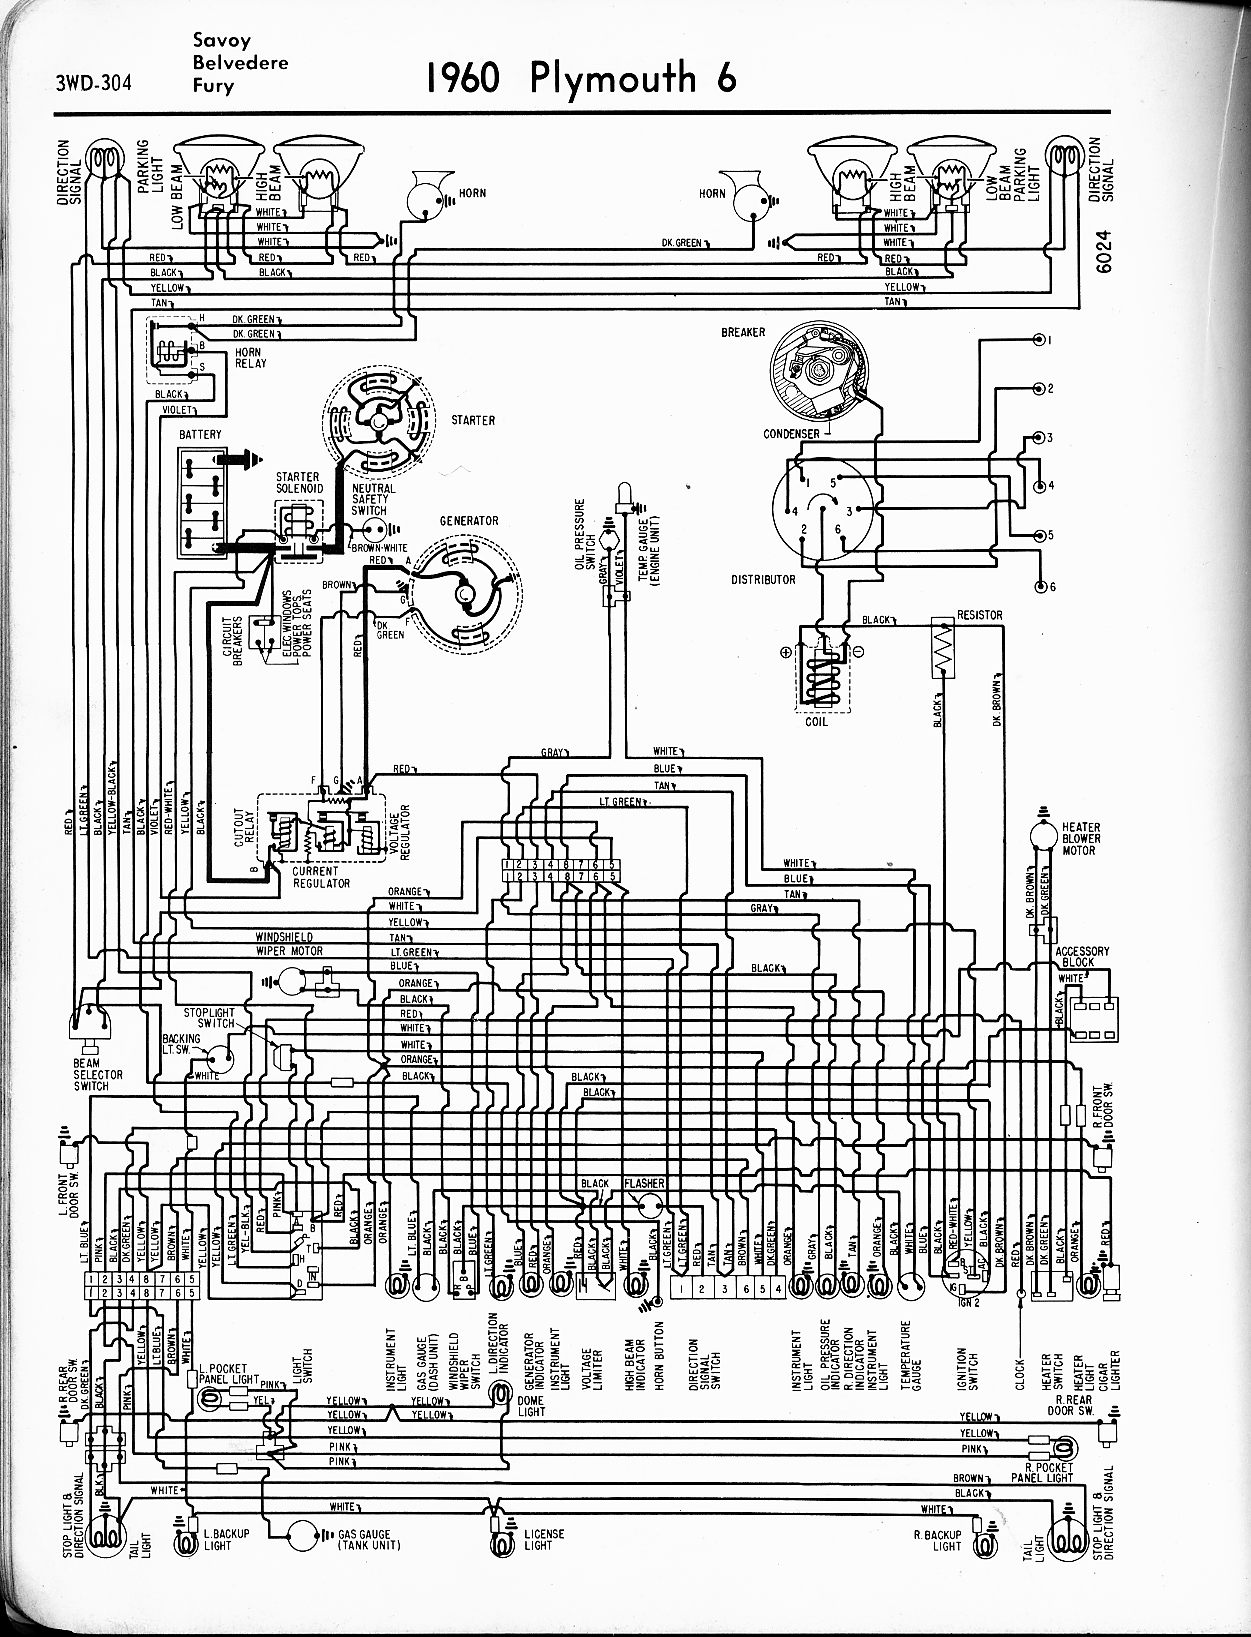 wiring diagrams of 1960 plymouth 6 valiant